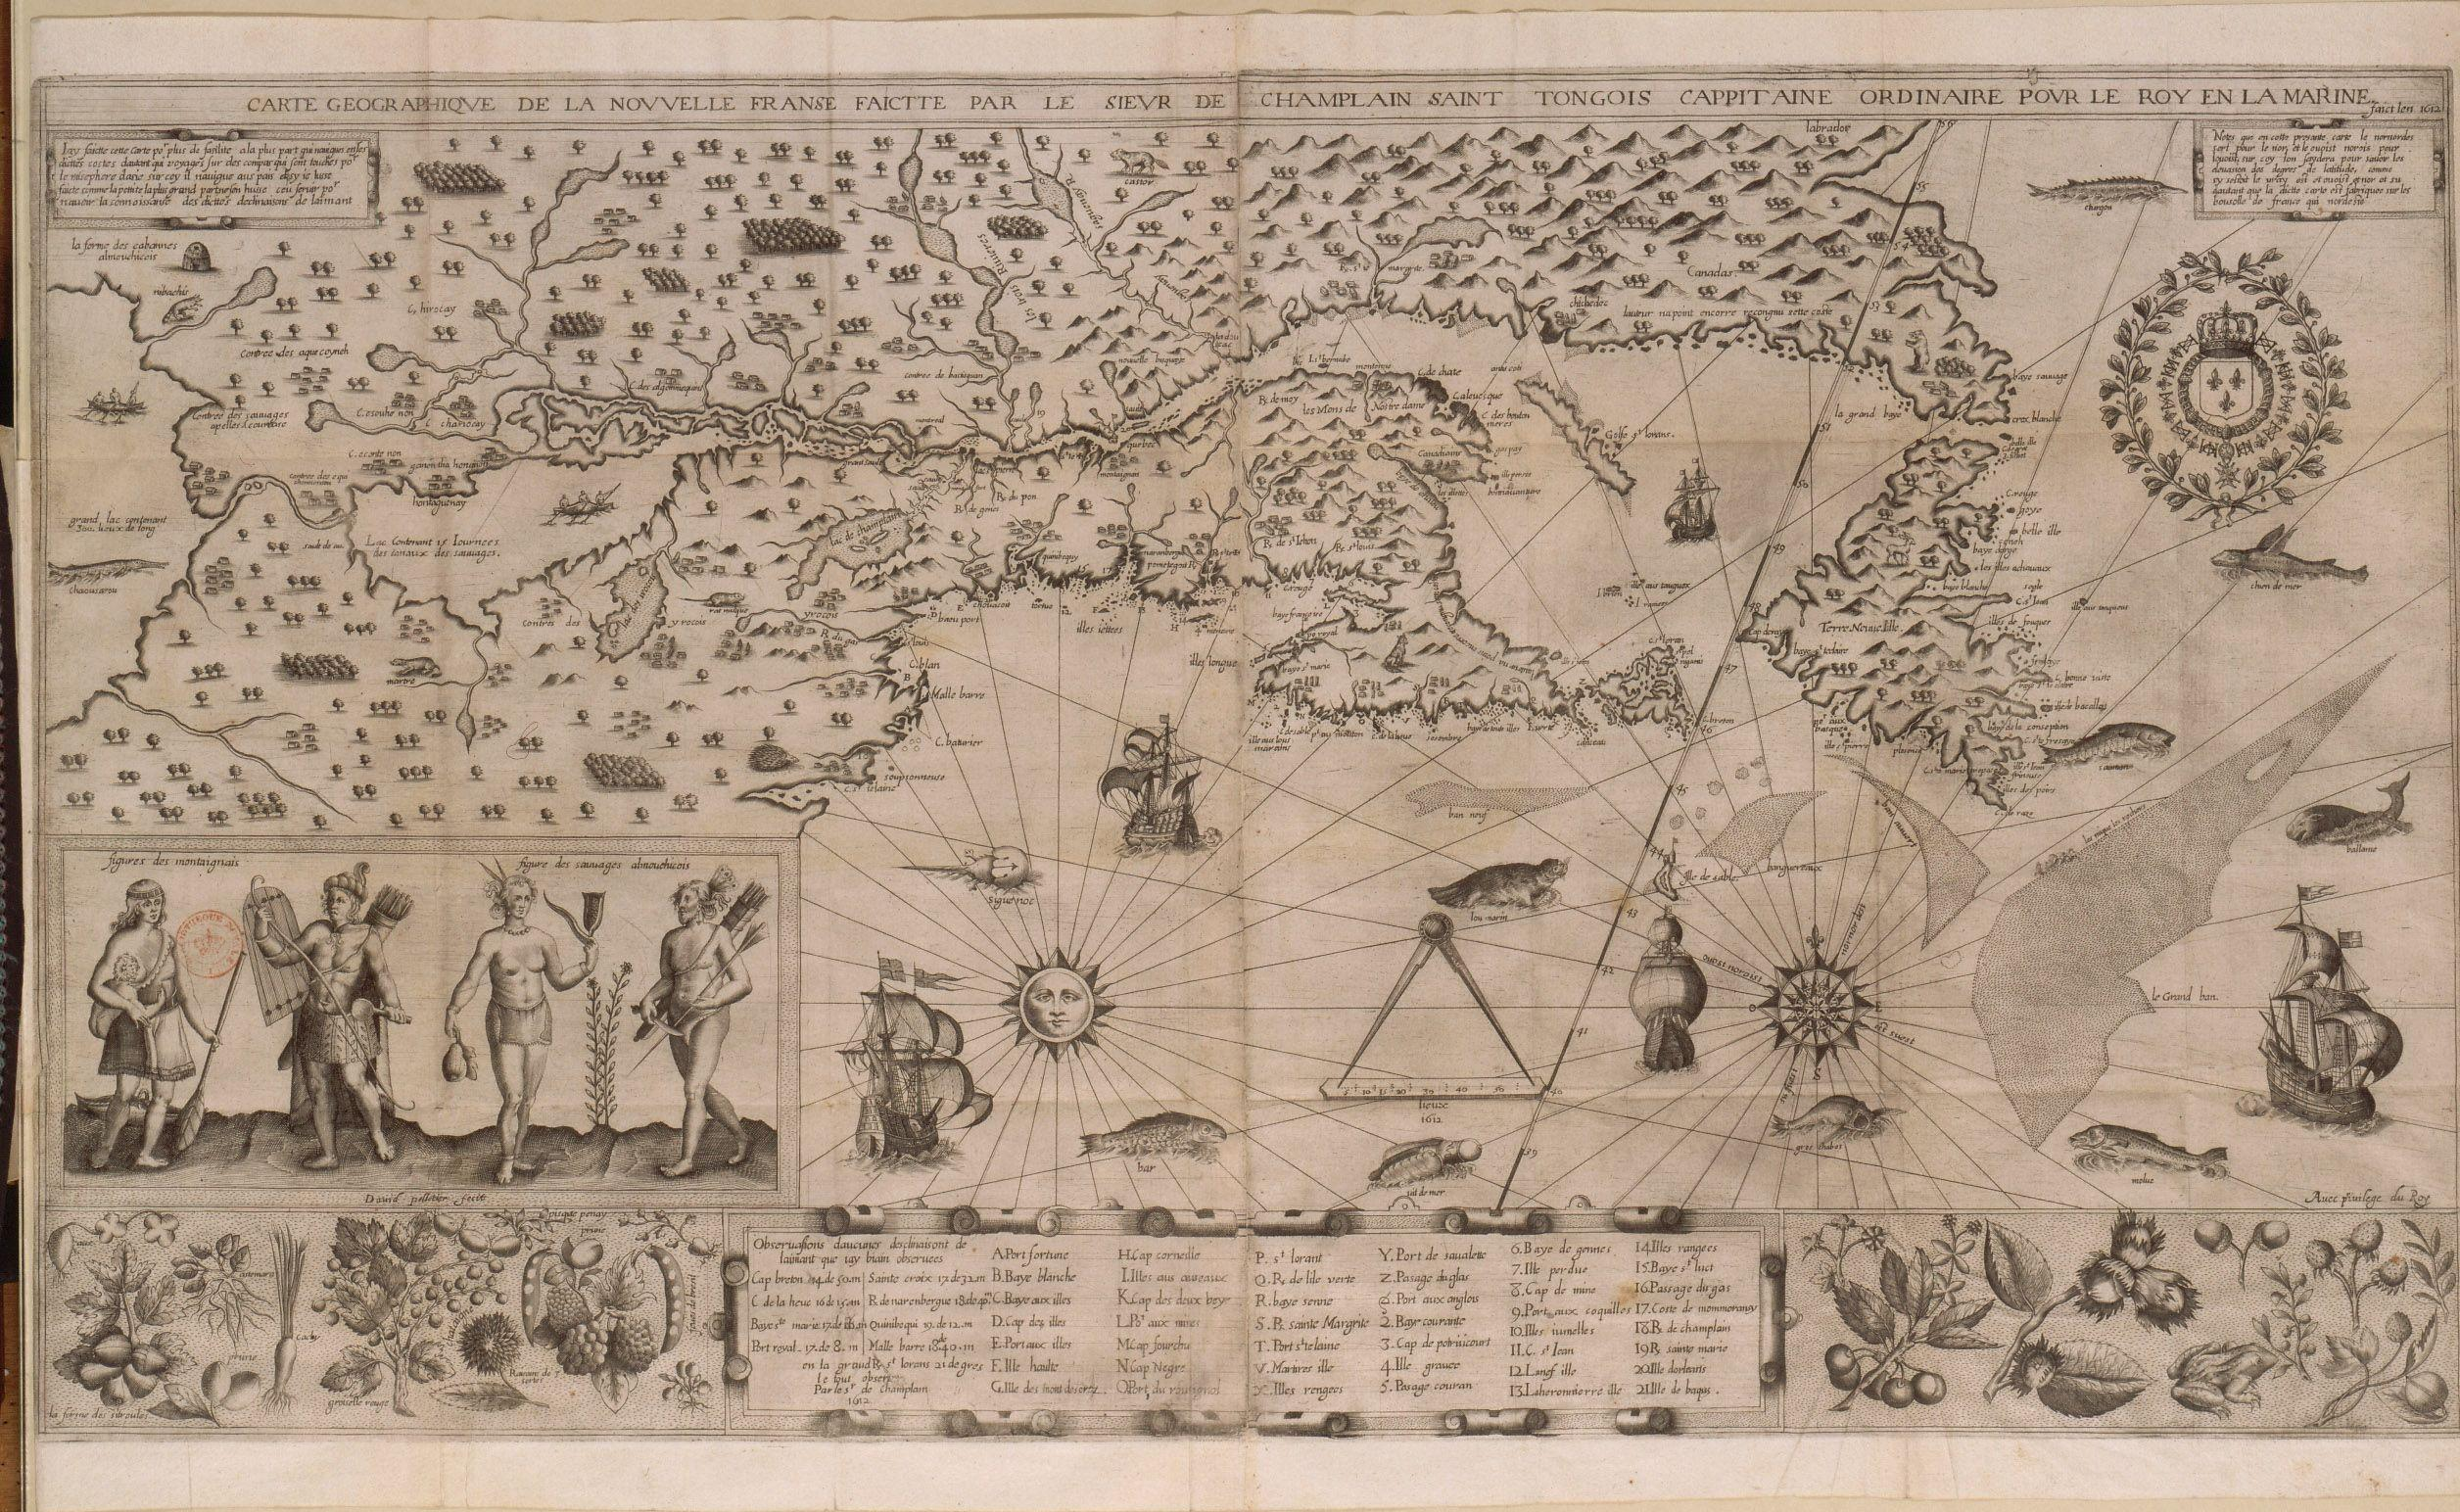 A map of New France made by Samuel de Champlain in 1612.